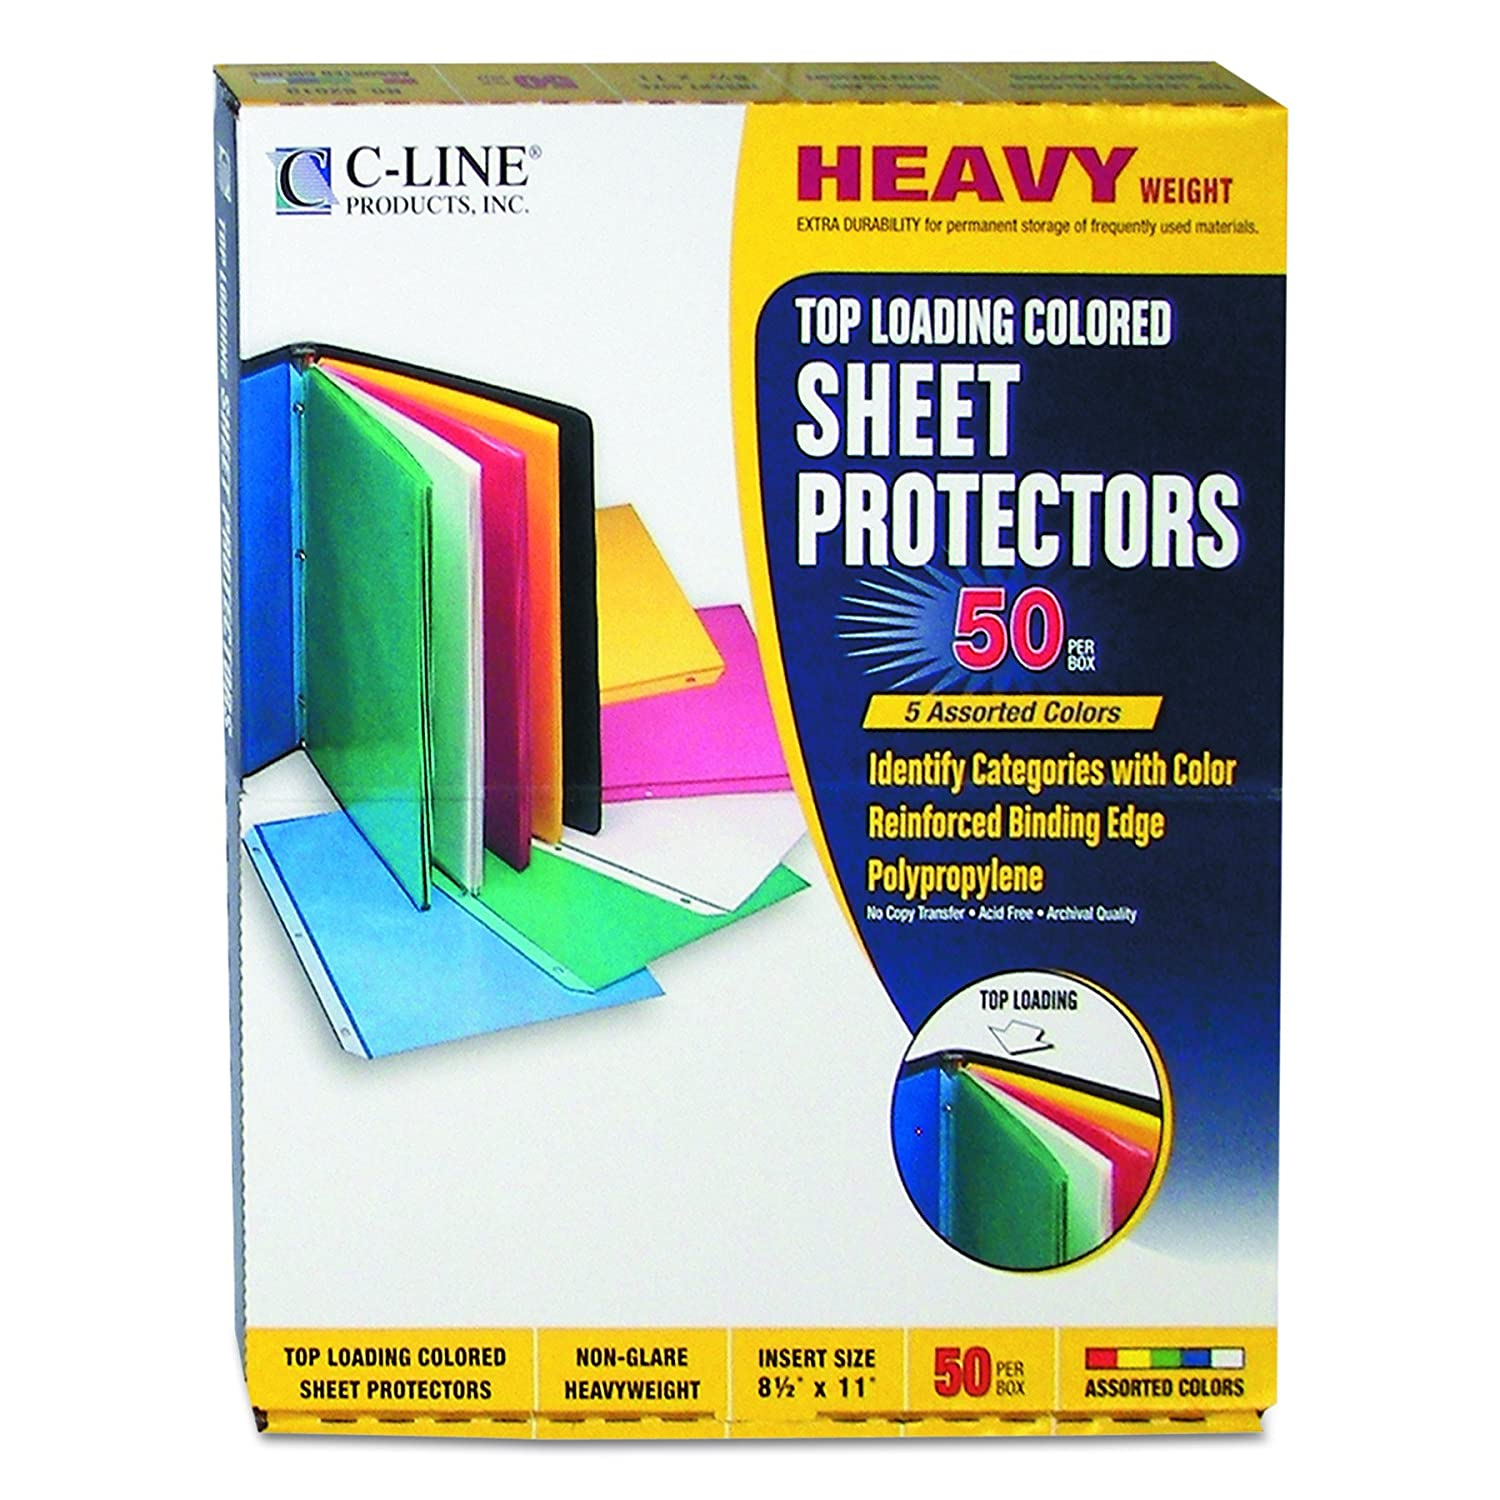 C-Line 62010 Colored Polypropylene Sheet Protector, assorted colors, 11 x 8 1/2, 50/BX - 2 x Sheet Capacity - For Letter 8.5 x 11 Sheet - 3 x Holes - Blue, Yellow, Green, Pink - Polypropylene - 50 / Box C-Line Products Inc.